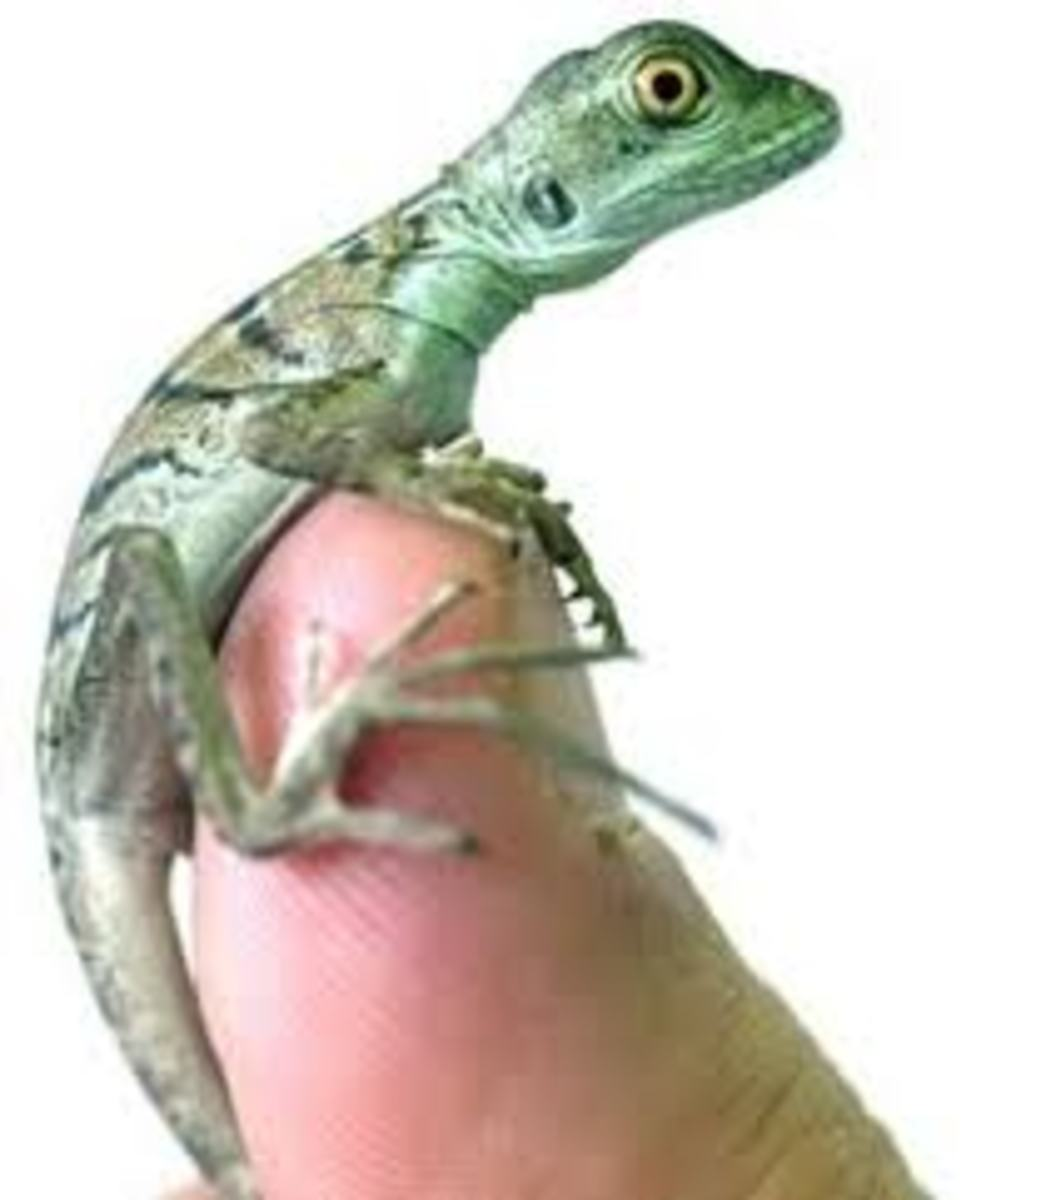 Basilisk hatchling on top of thumb